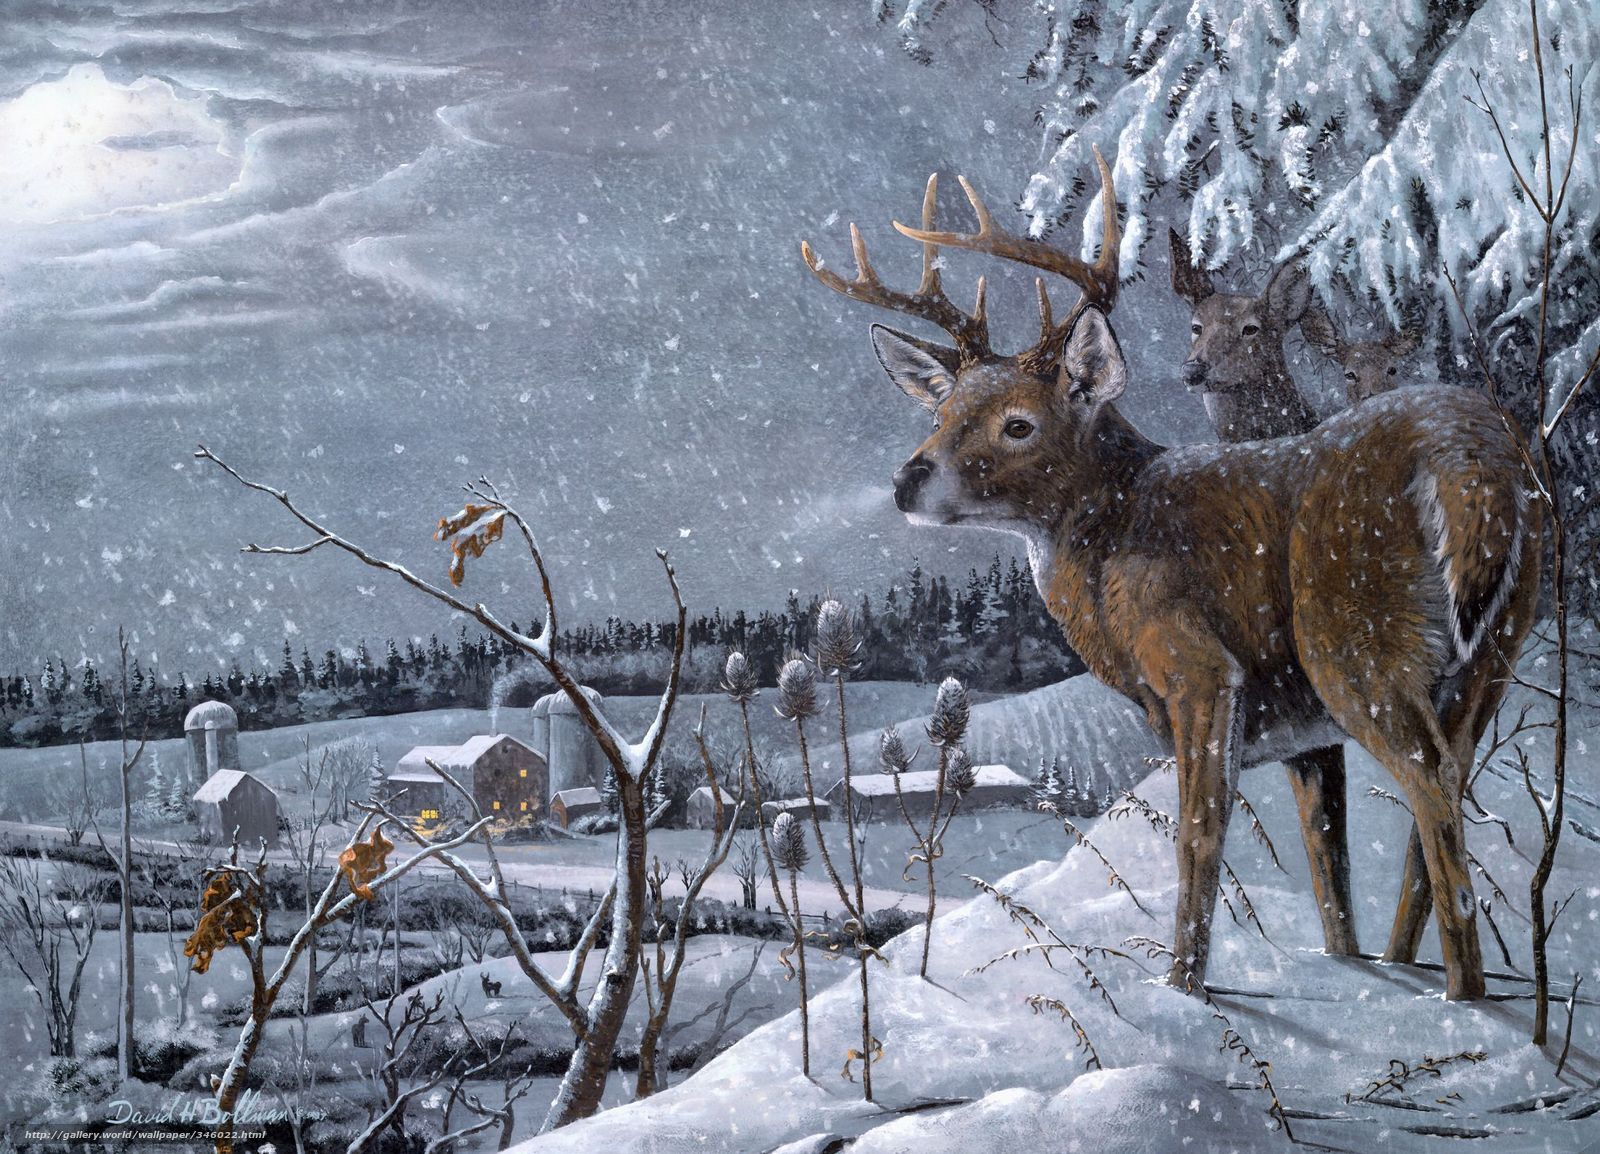 Winter Wallpaper With Deer Download wallpaper david h bollman Deer Winter snow free